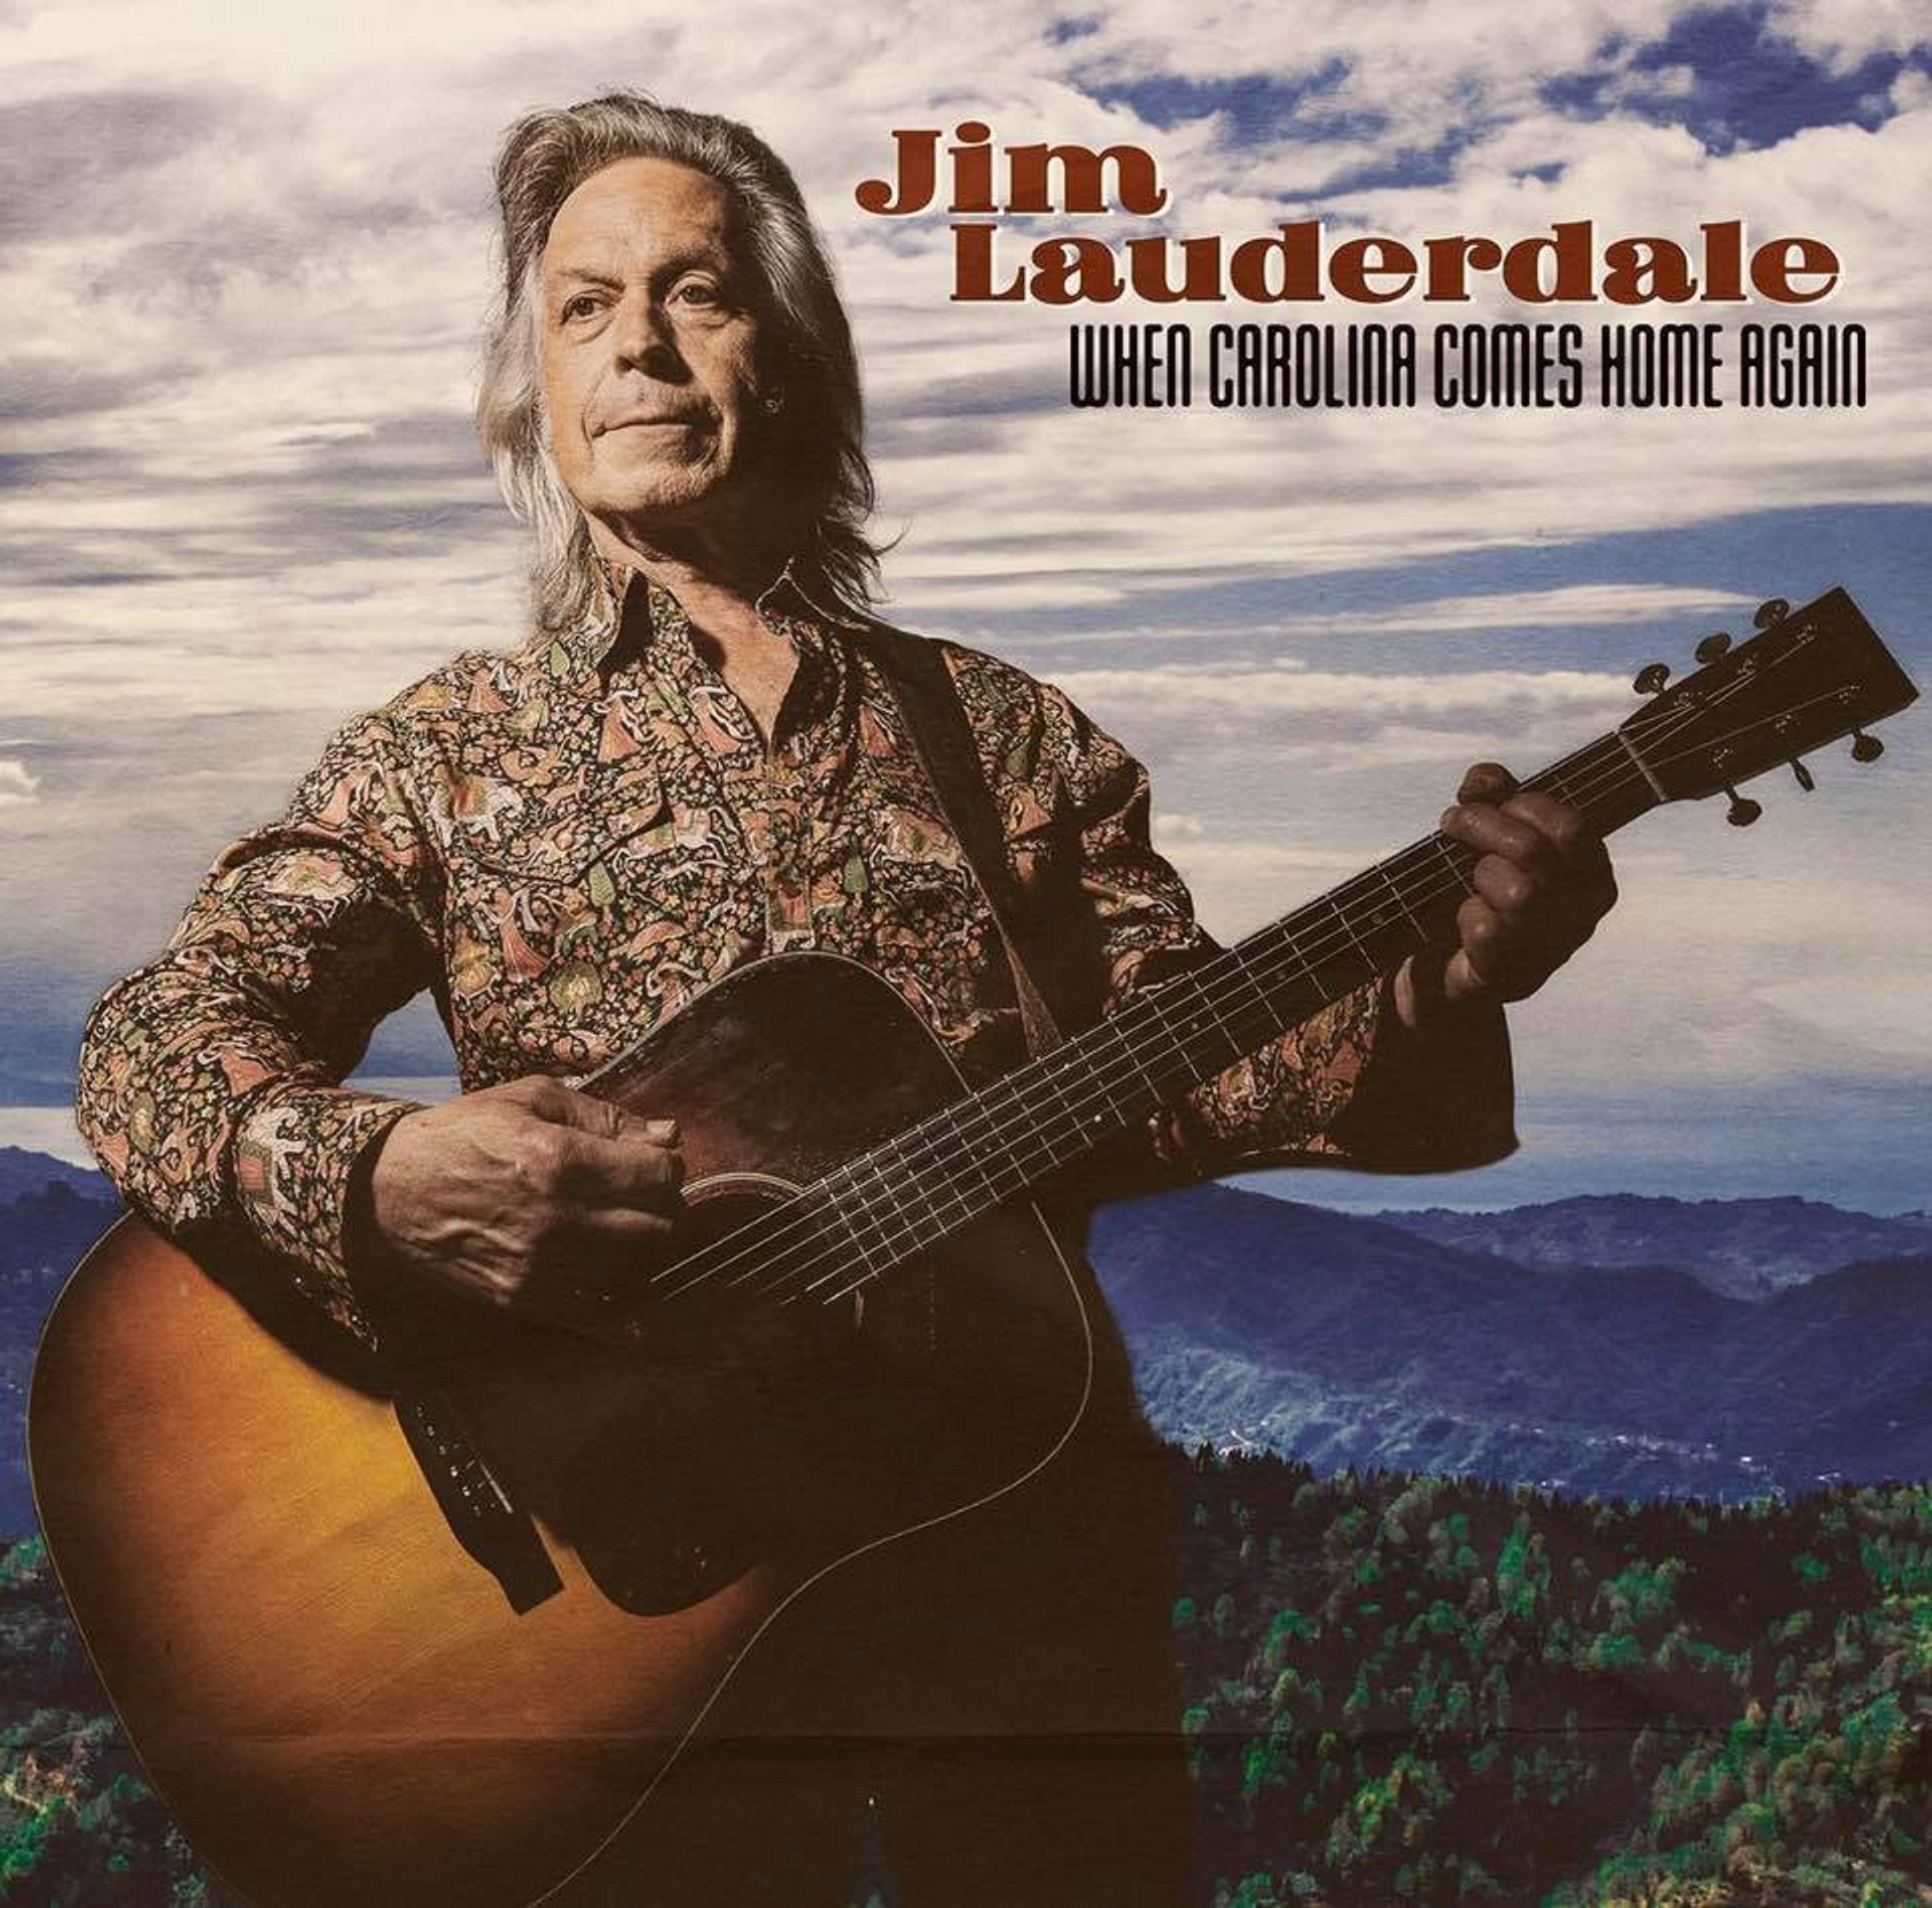 Jim Lauderdale Returns To His Roots With 'When Carolina Comes Home Again'